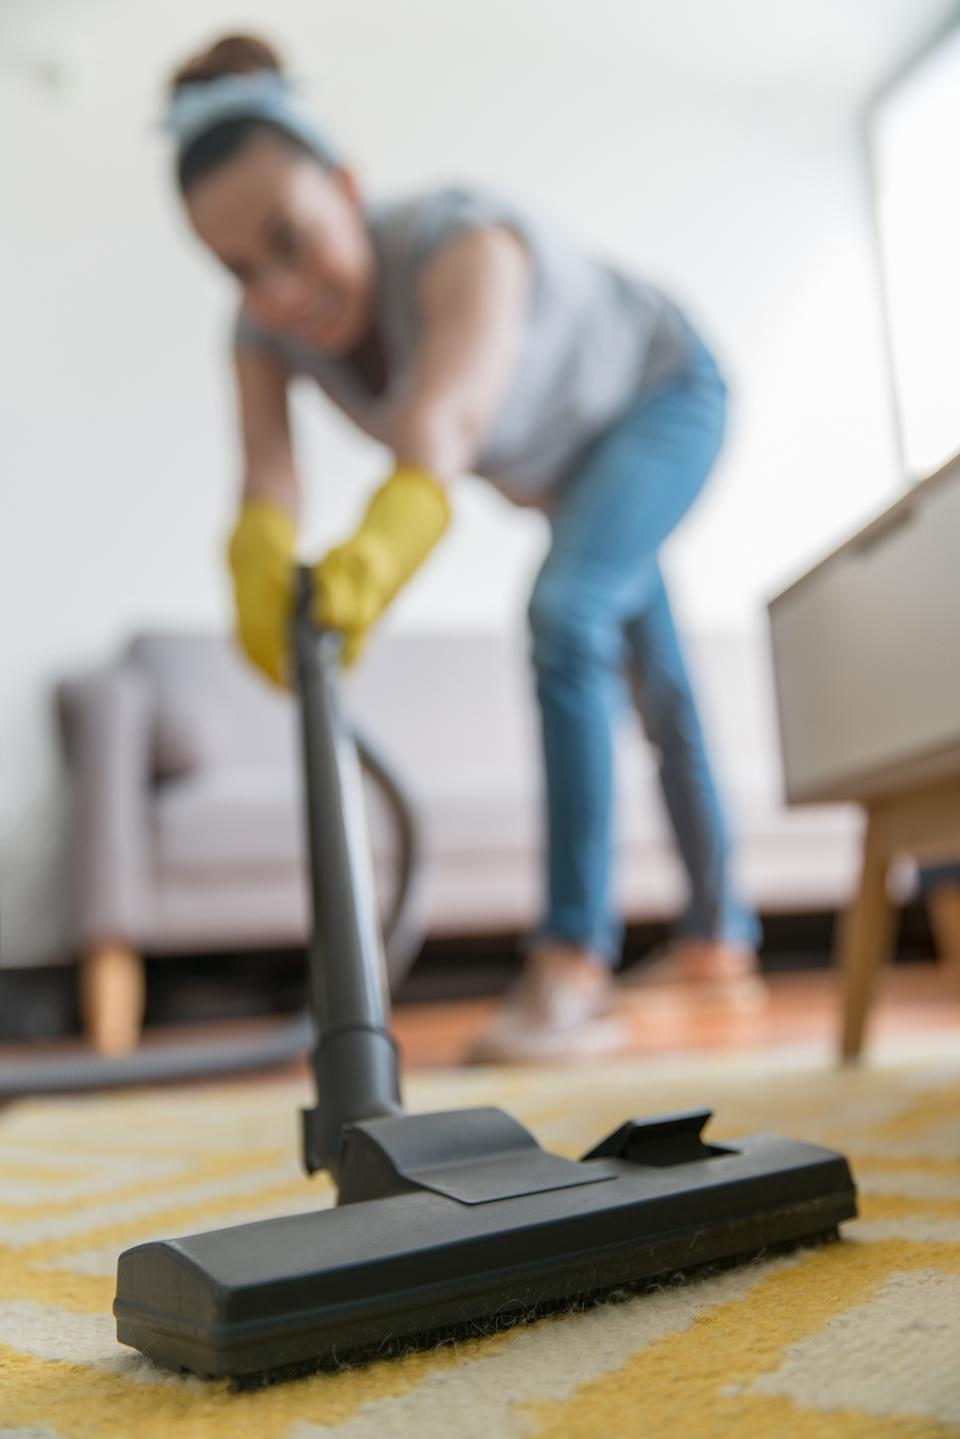 Latin American woman vacuuming the carpet at home while doing house chores - domestic life concepts